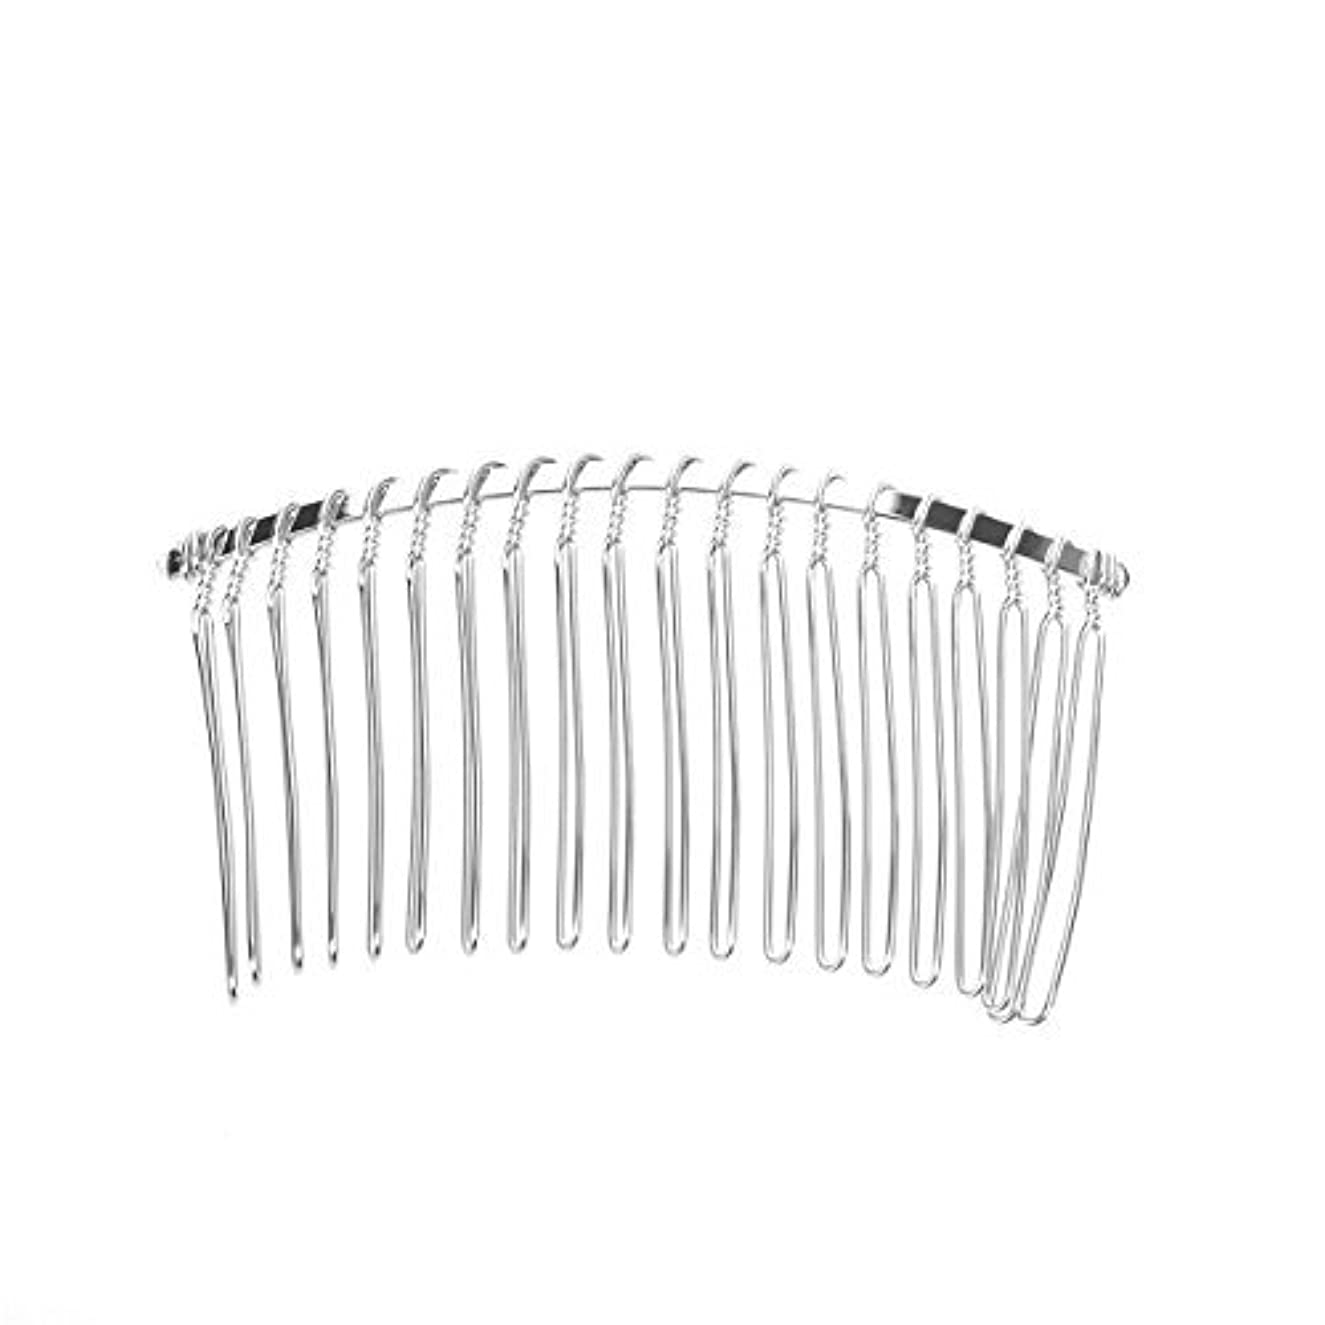 出発ふけるもつれPixnor 7.8cm 20 Teeth Fancy DIY Metal Wire Hair Clip Comb Bridal Wedding Veil Comb (Silver) [並行輸入品]